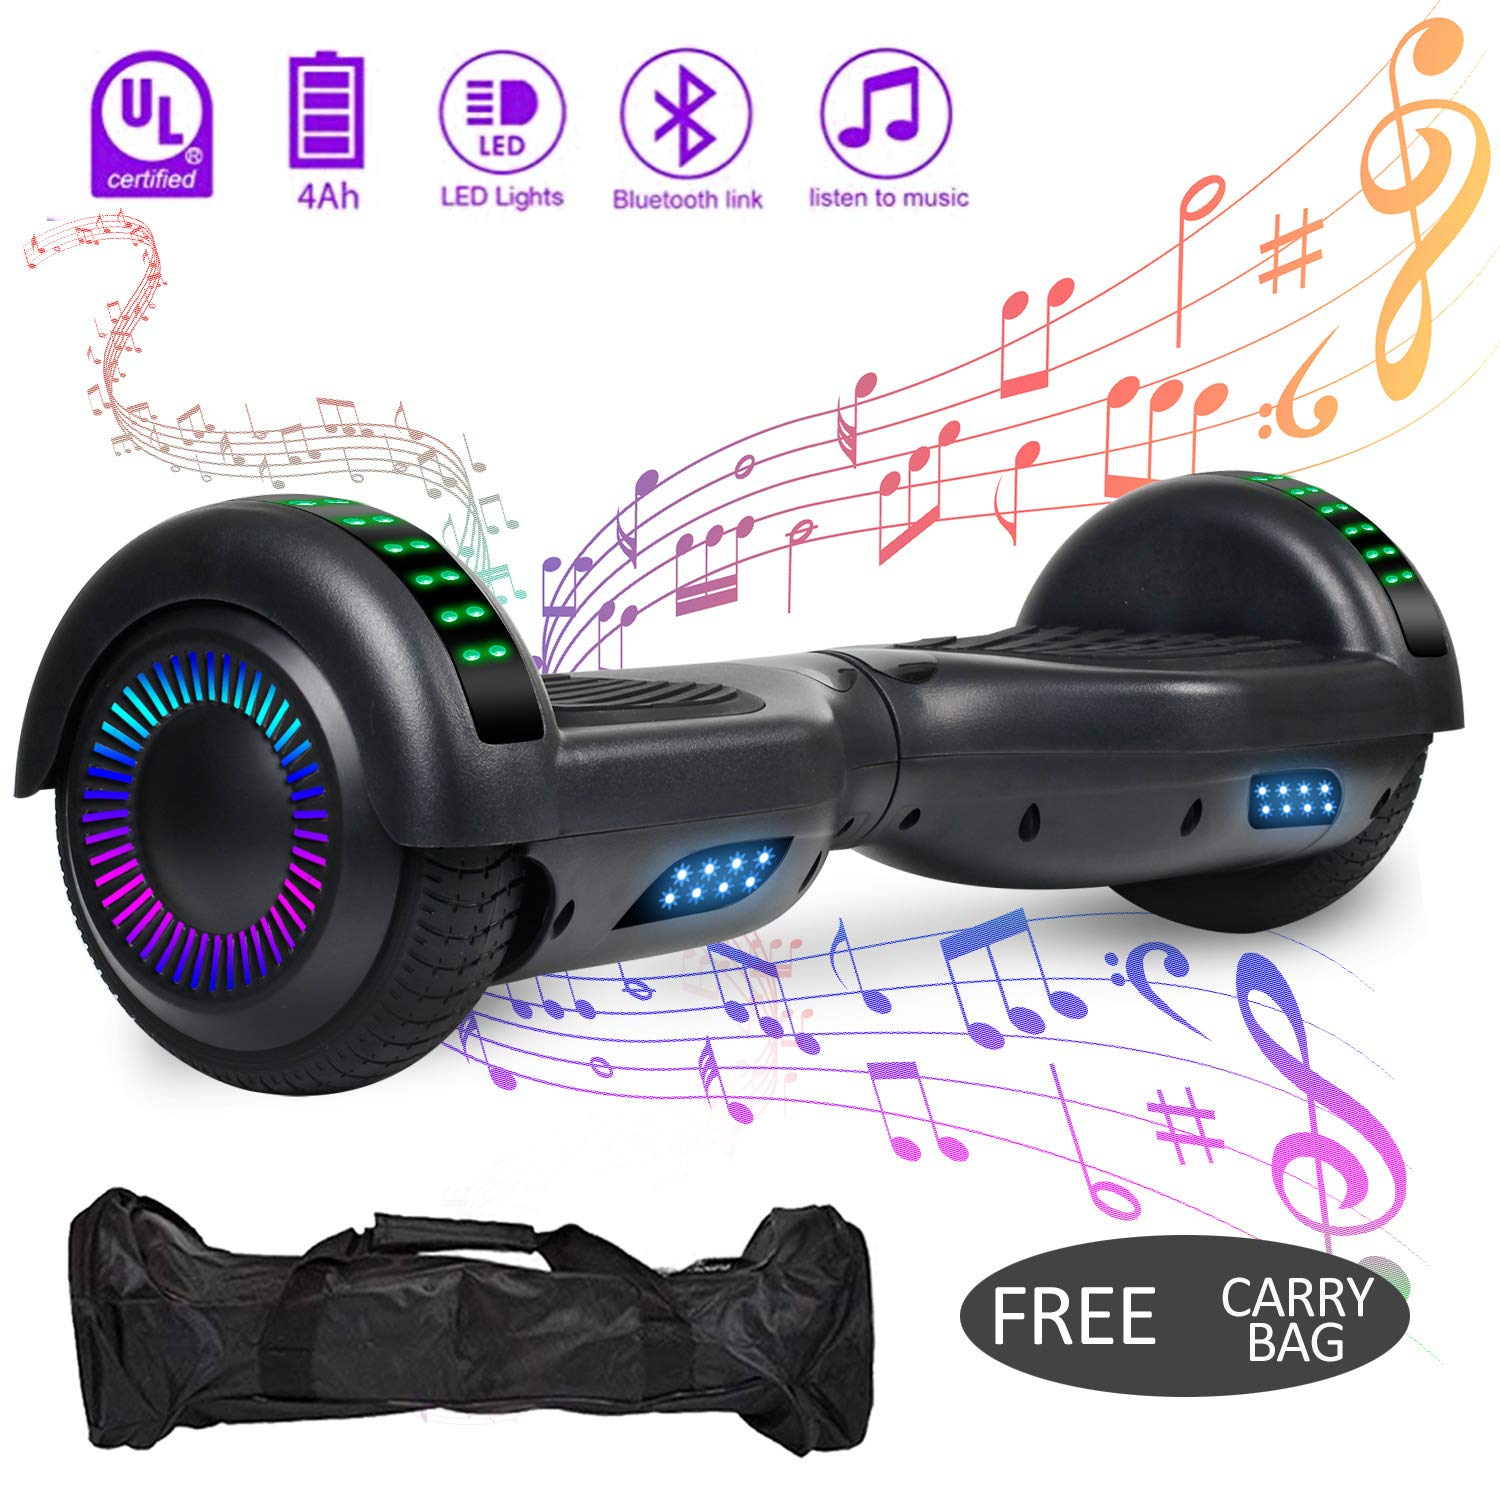 VEVELINE Hoverboard UL2272 Certified 6.5 inch Self Balancing Scooter with Colorful Flash Wheel Top LED Light, Built-in Bluetooth Speaker,Hover Board for Kids Adults Free Carry Bag(Blcak)